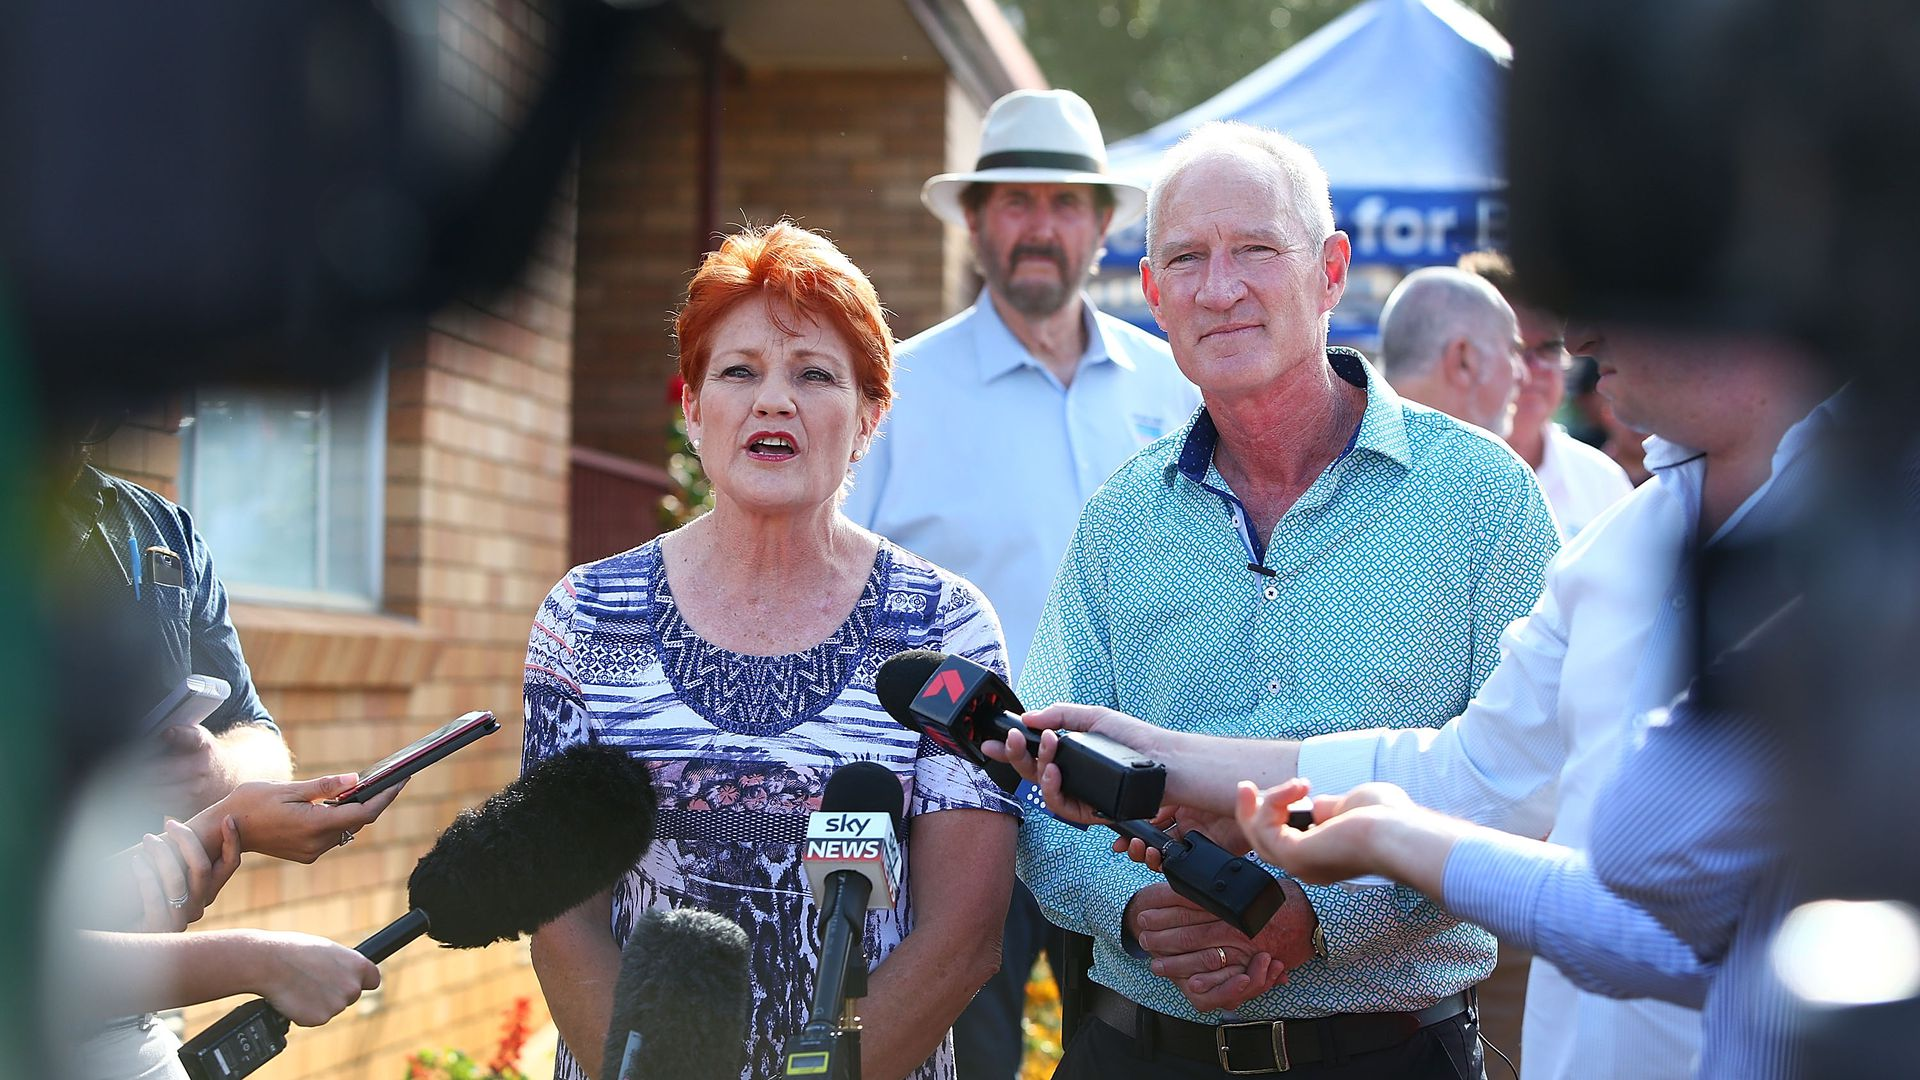 One Nation leader Pauline Hanson and party official Steve Dickson address the media.